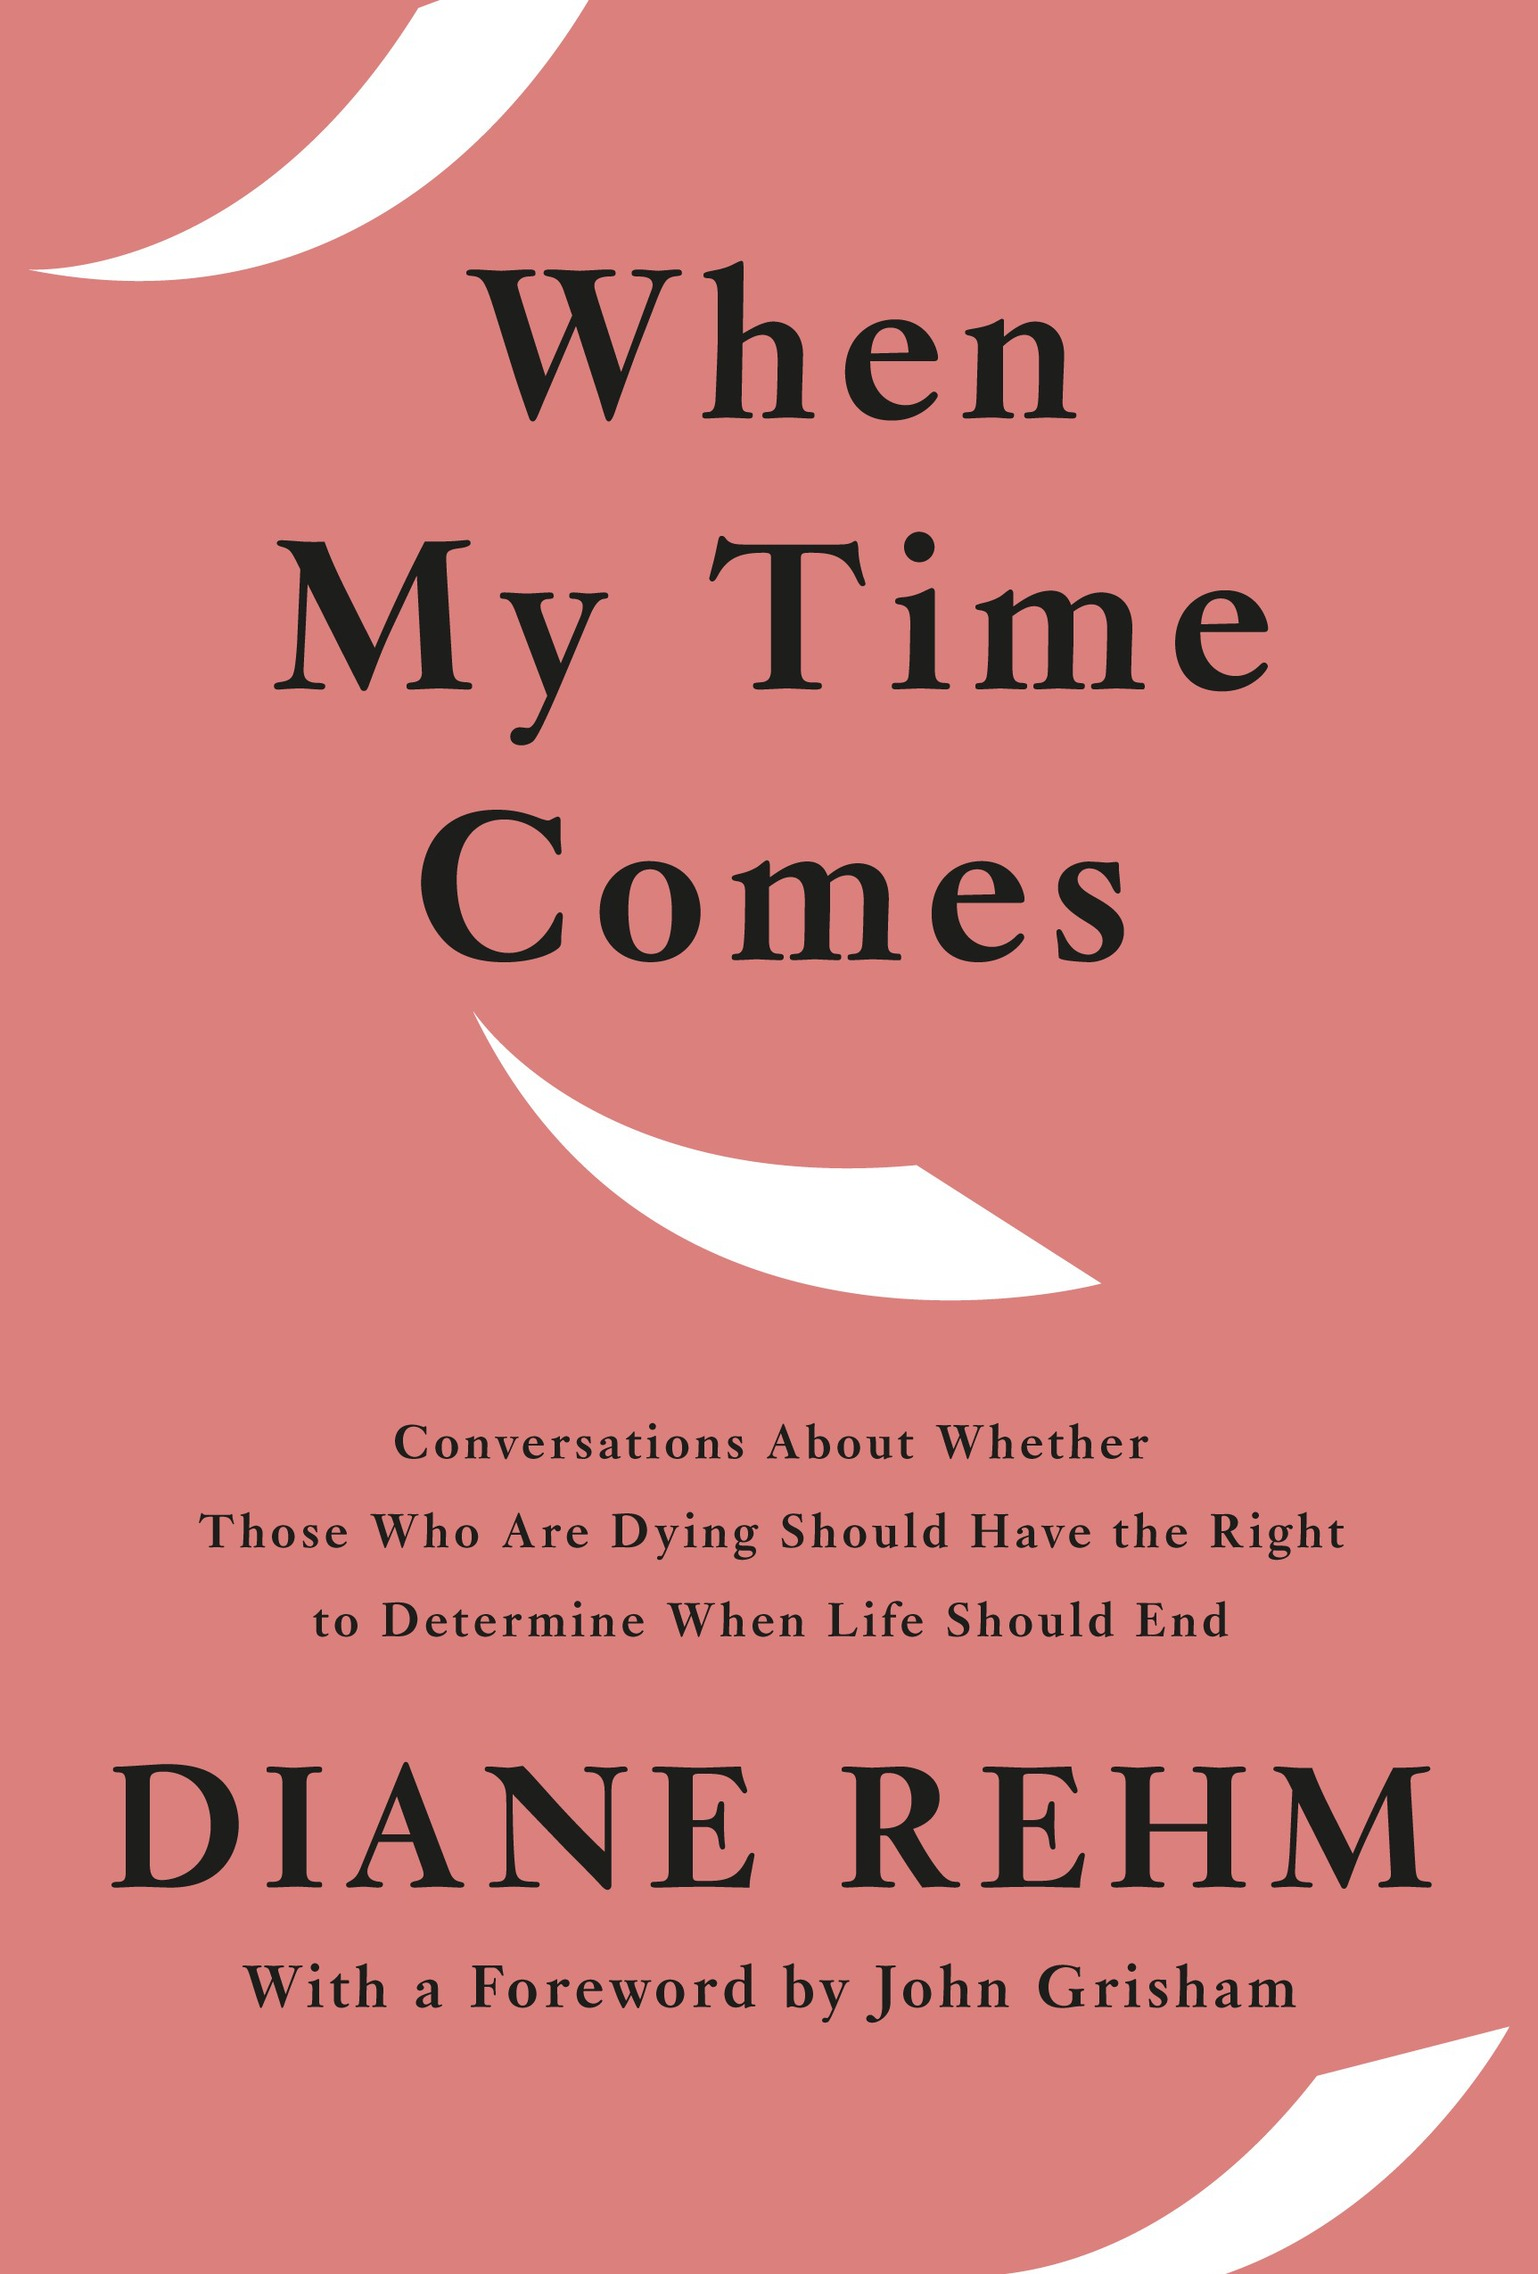 When My Time Comes| Watch Movies Online